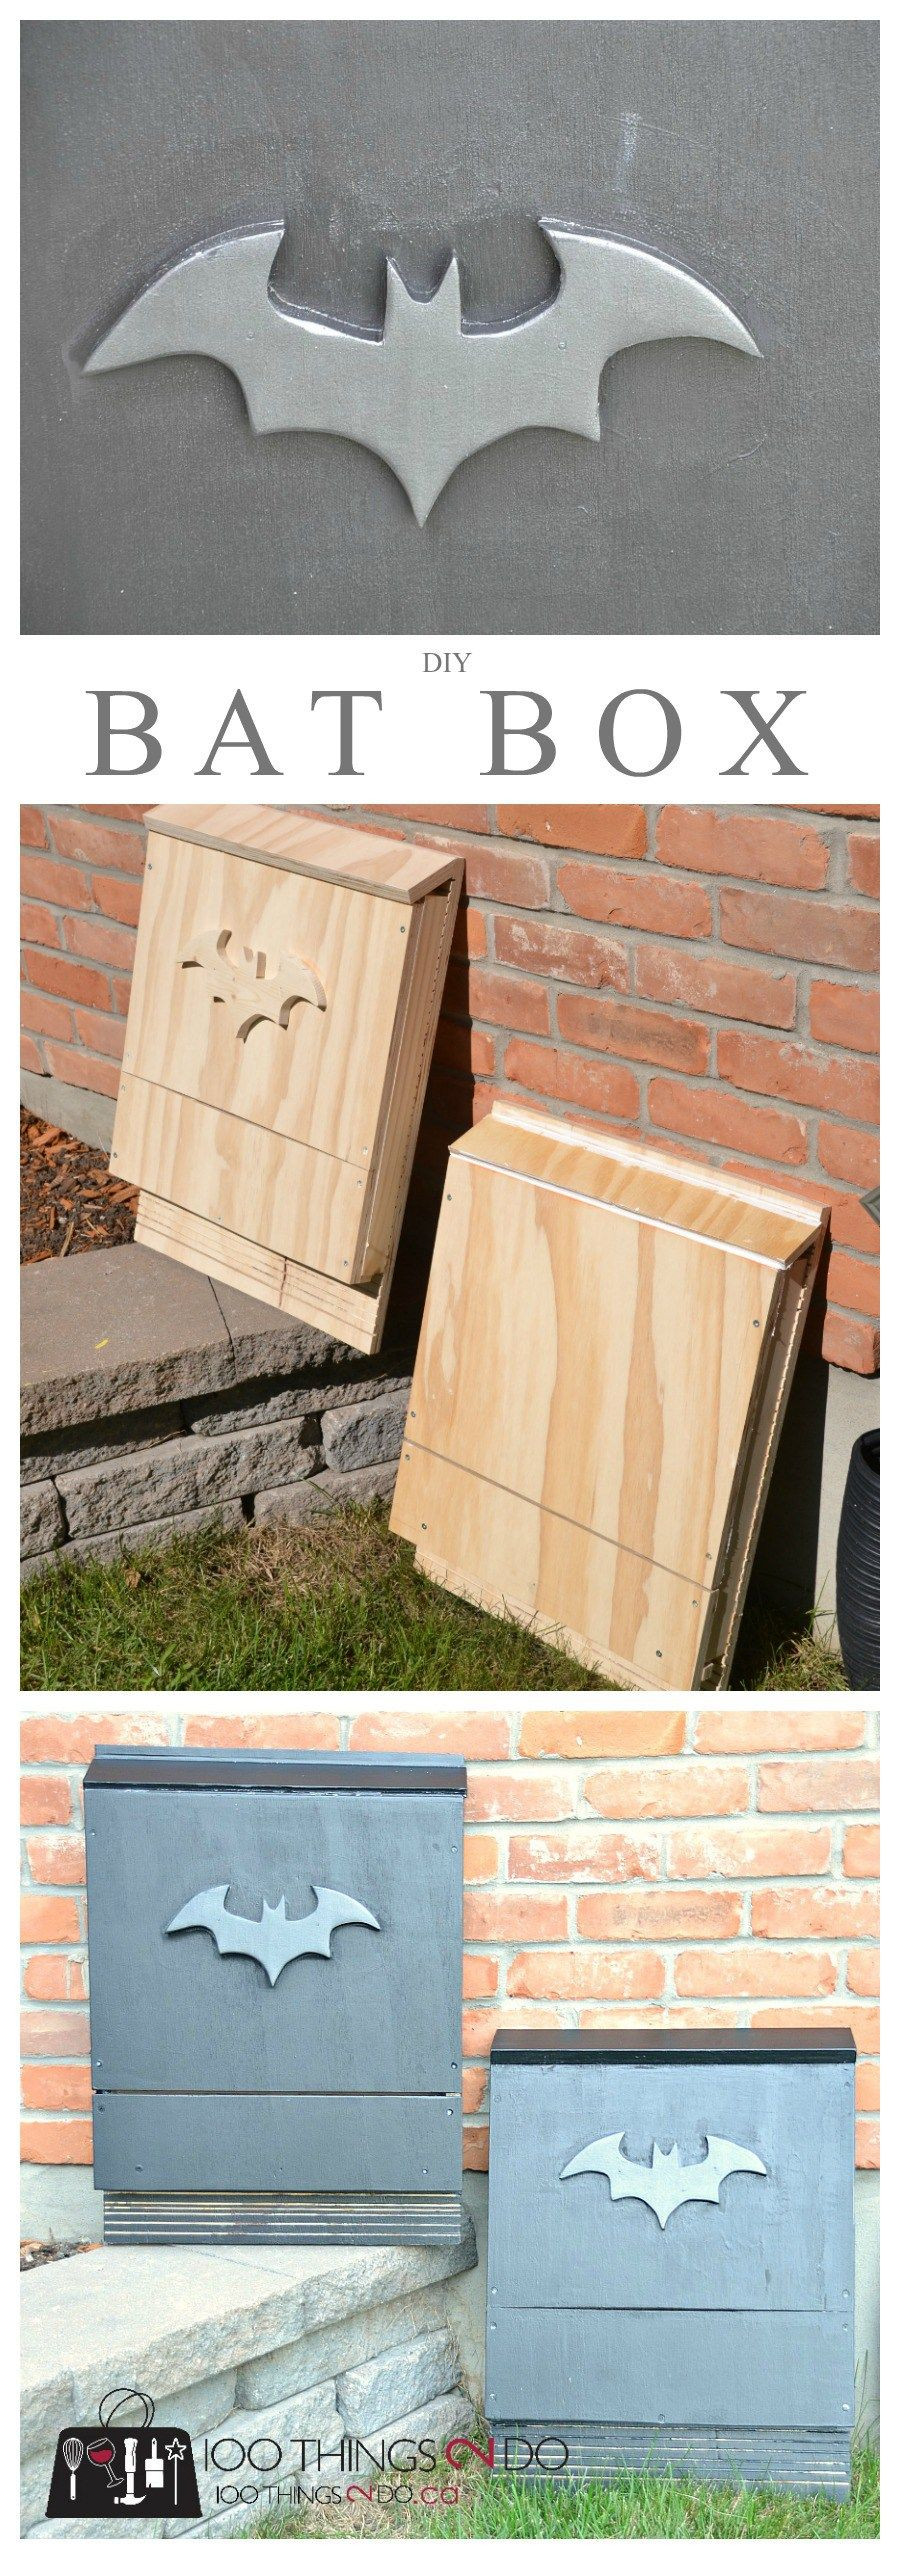 Best ideas about Bat Box DIY . Save or Pin DIY bat box wood projects Now.